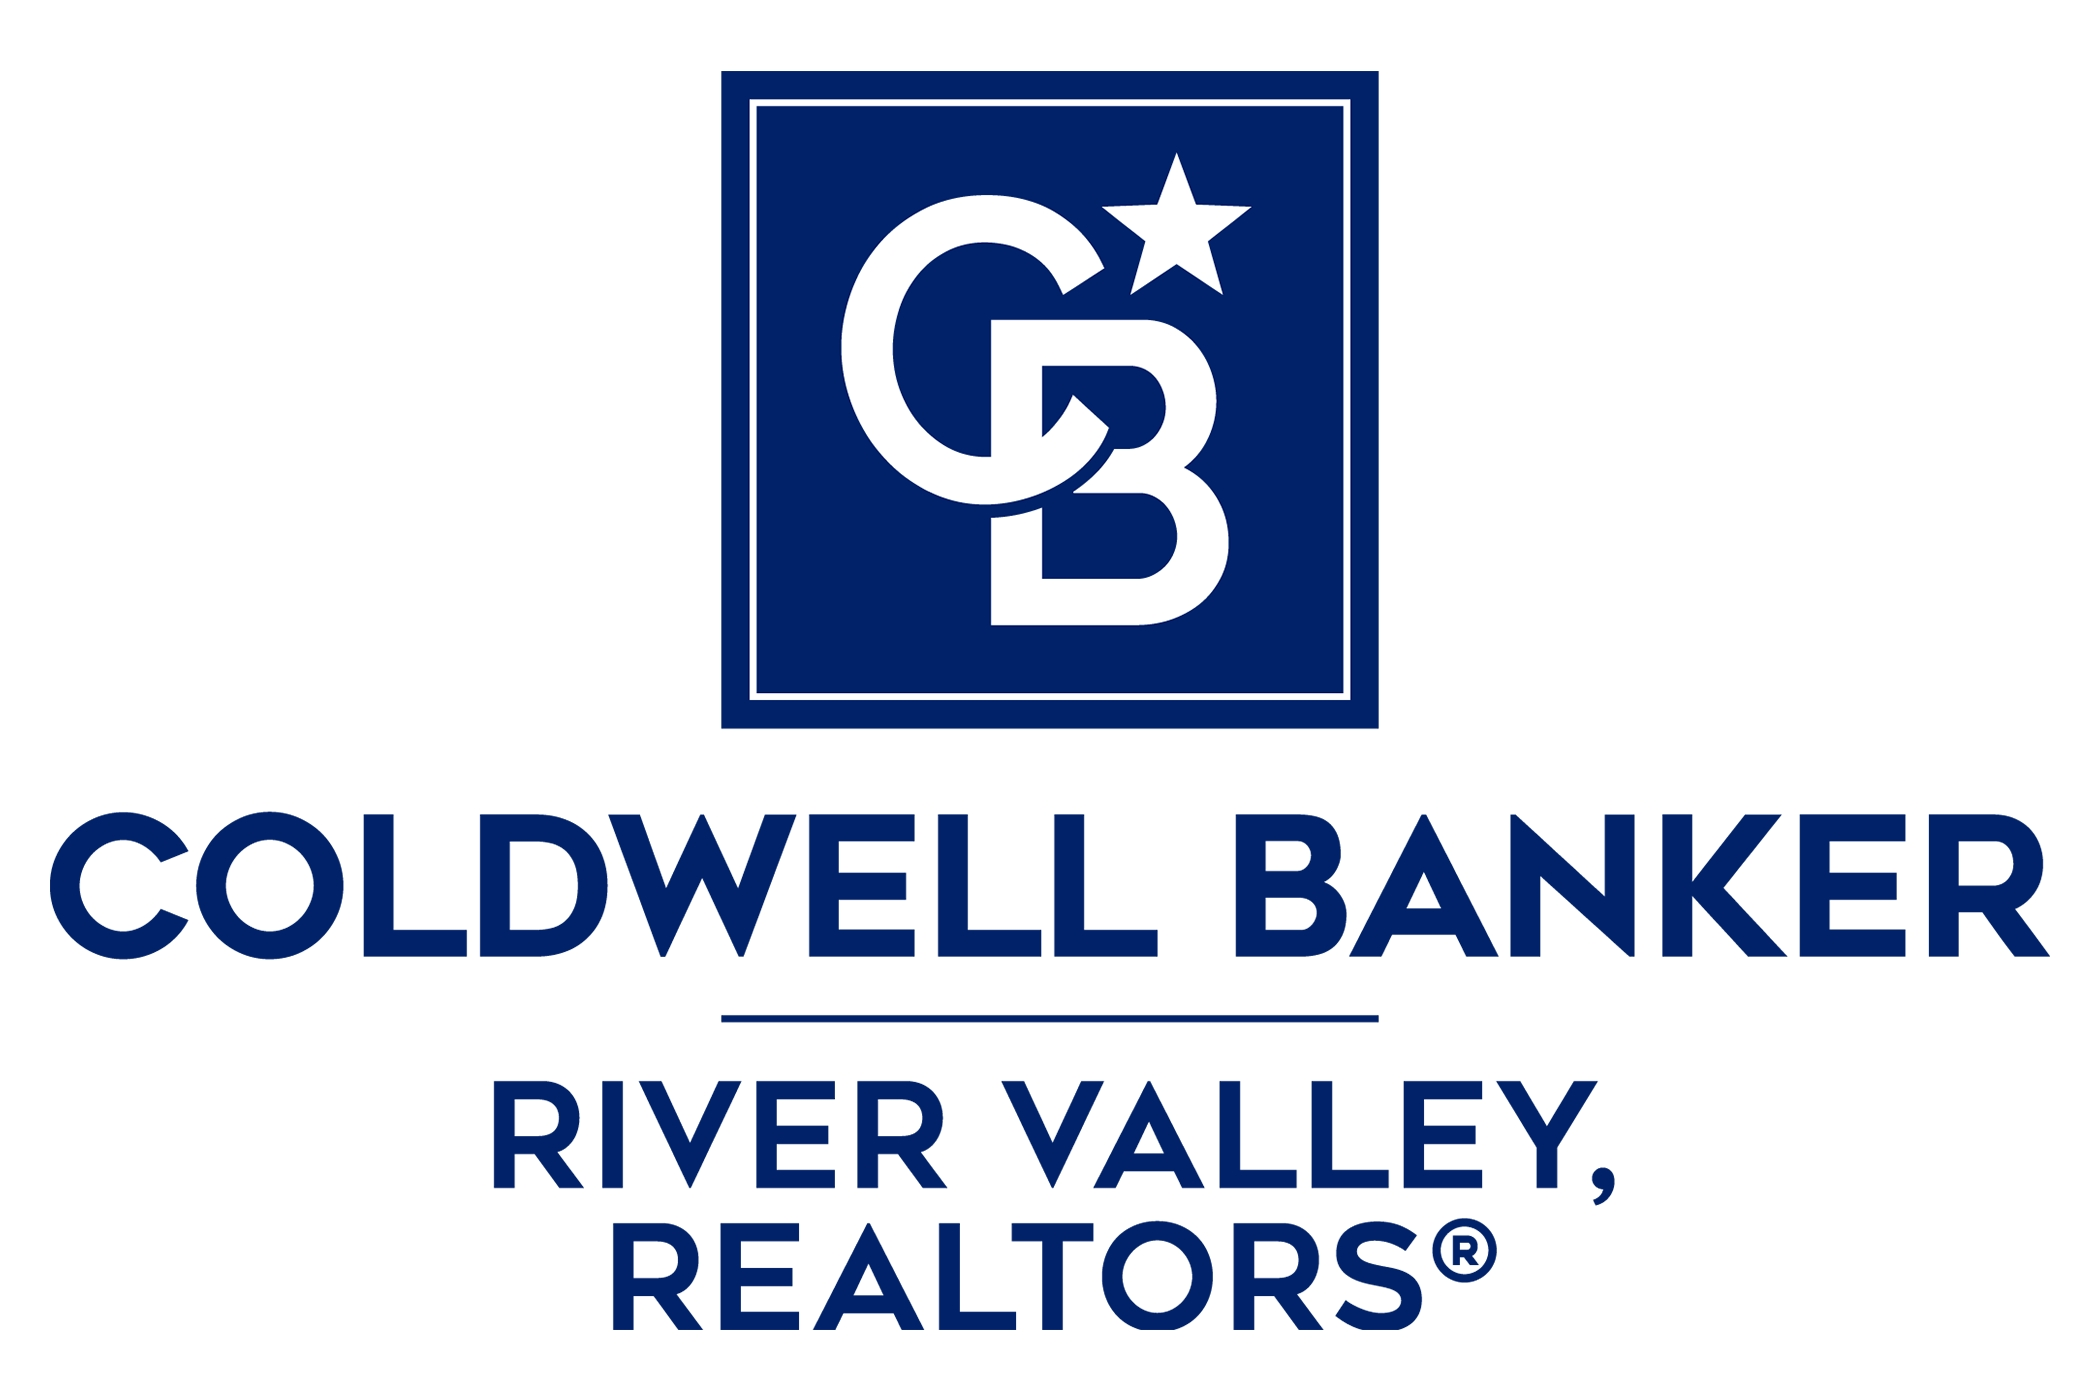 Mike Knothe - Coldwell Banker River Valley Realtors